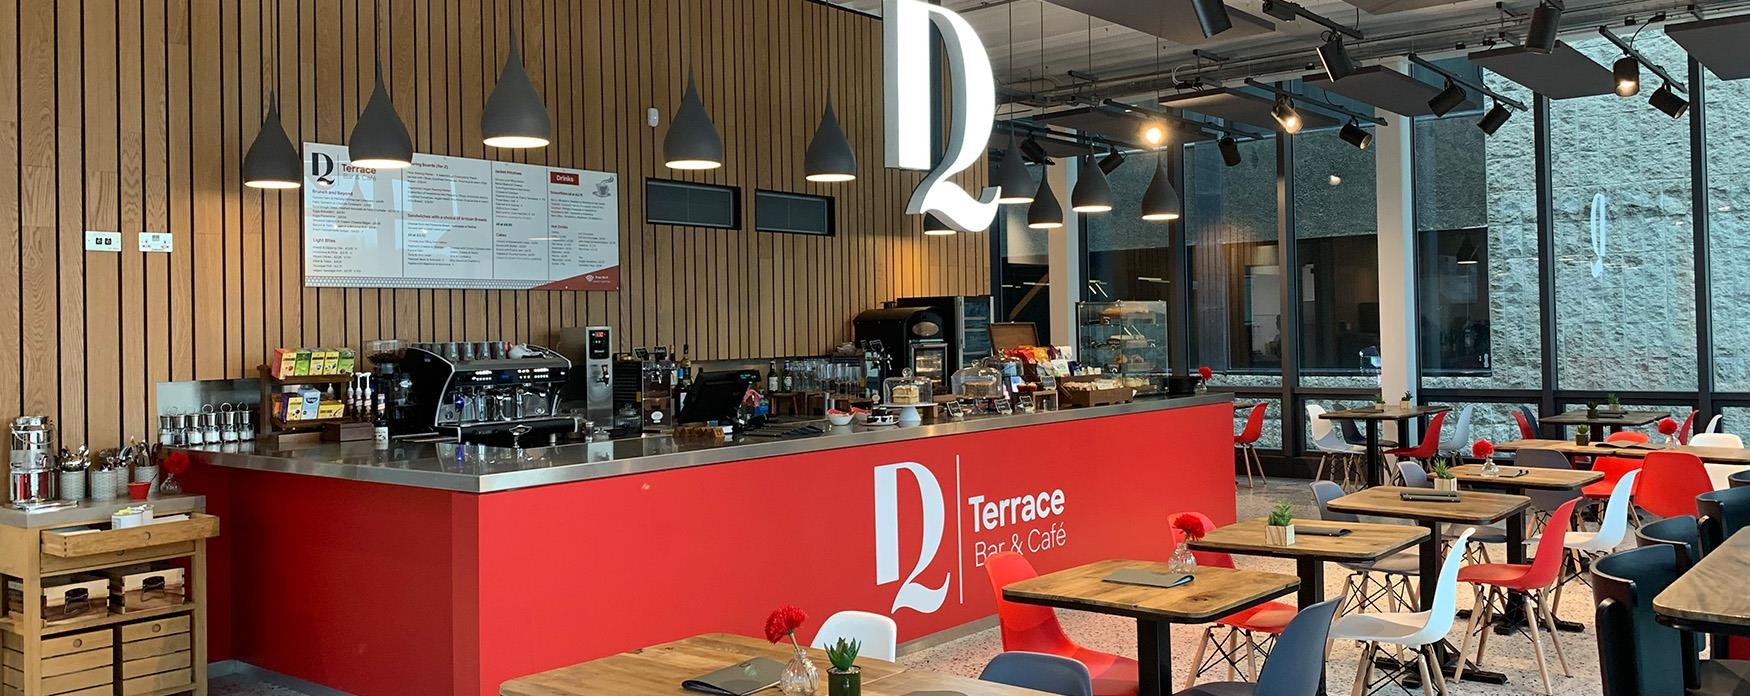 The new DQ Terrace Bar & Cafe has spectacular views of Devonshire Park.